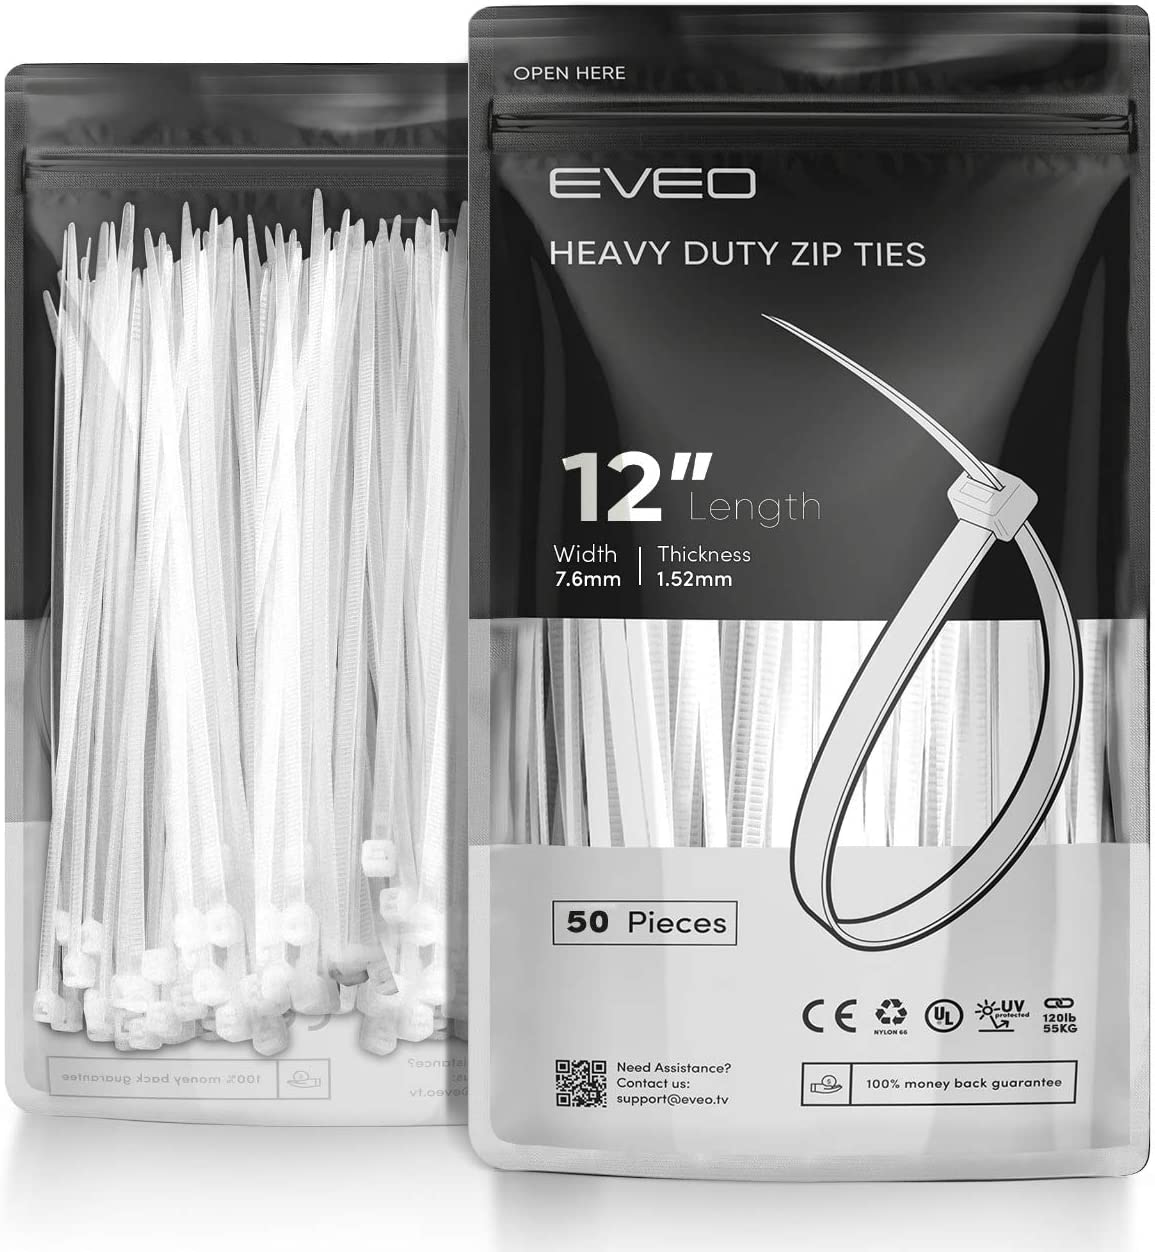 Black Zip Ties Plastic Ties Wire Ties Wraps for Cables Black EVEO 12 inch Zip Ties Heavy Duty Cable Ties Straps /& Zipties